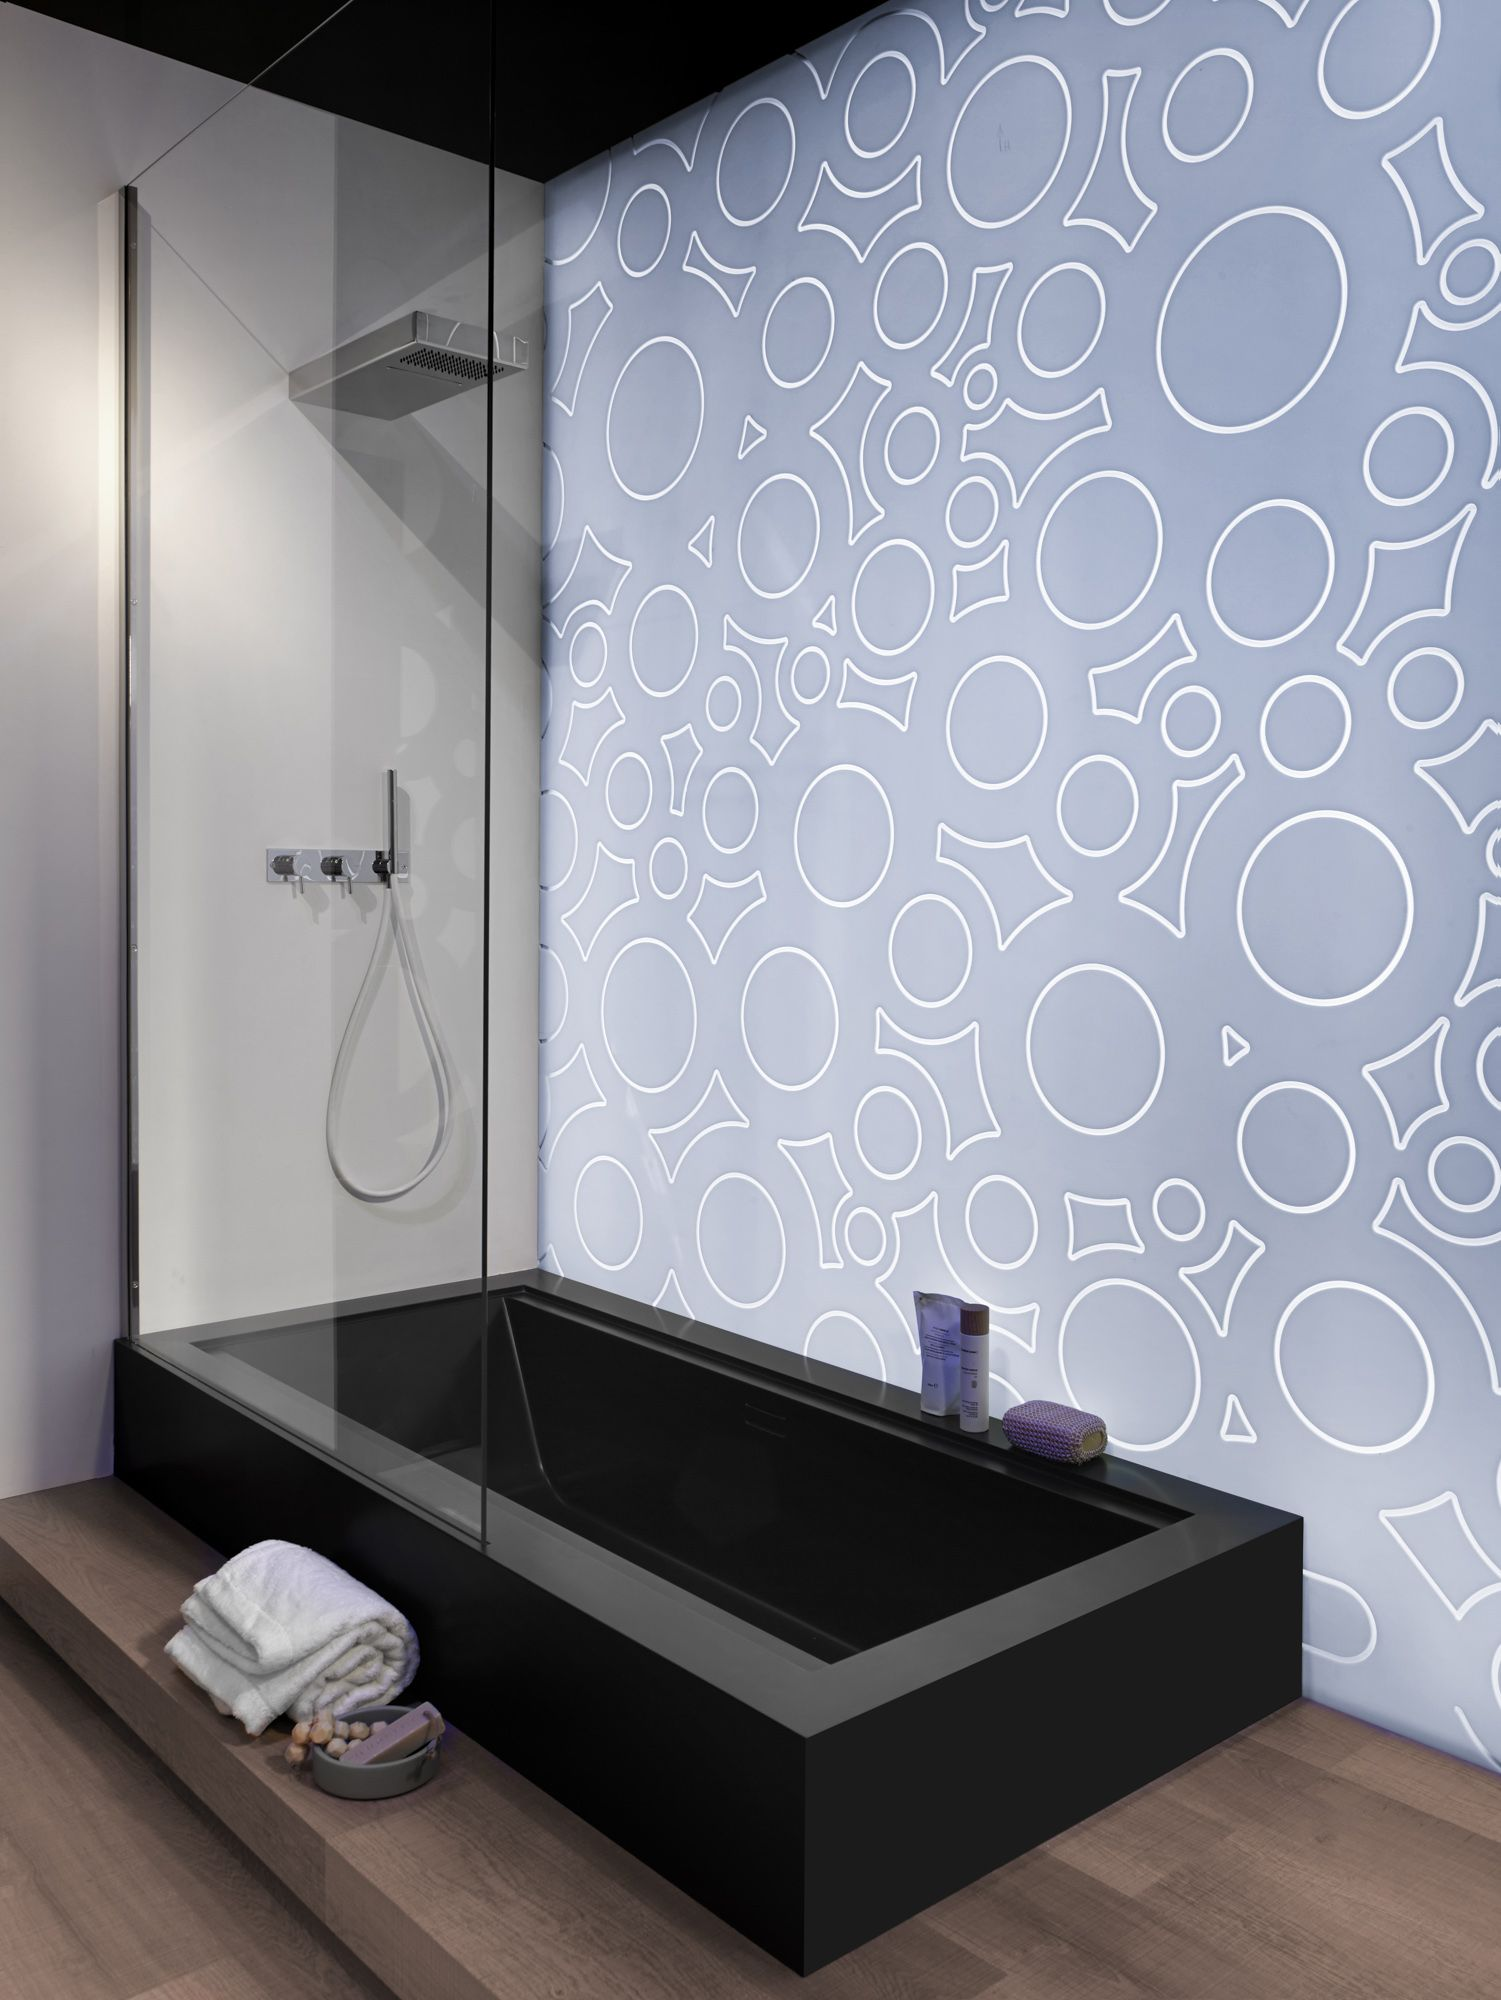 "Bathtub Shower"" design by Rexa Design, Italy; www.rexadesign.it ..."